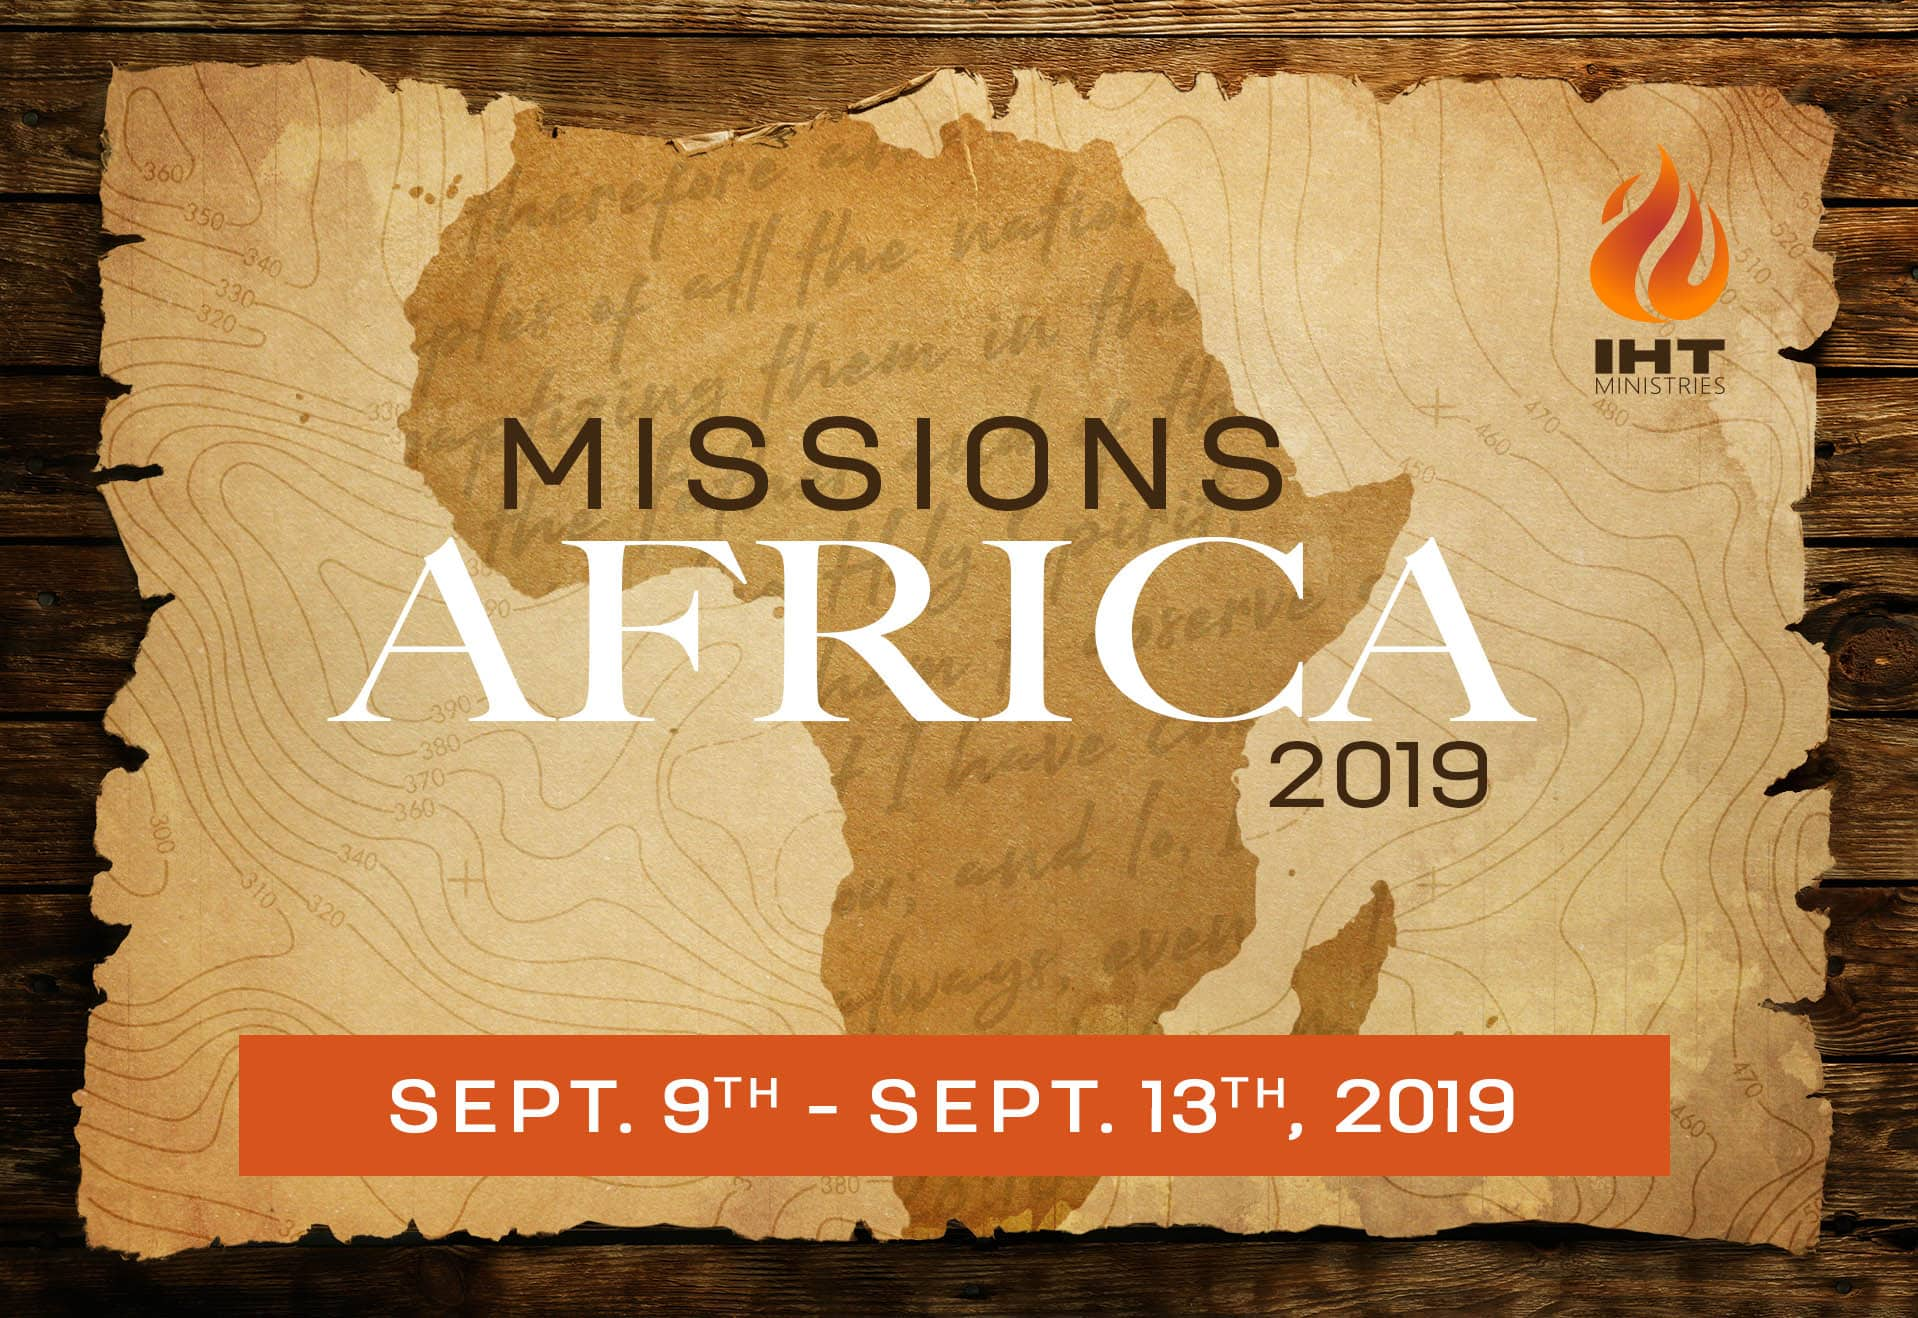 Africa Missions Trip 2019